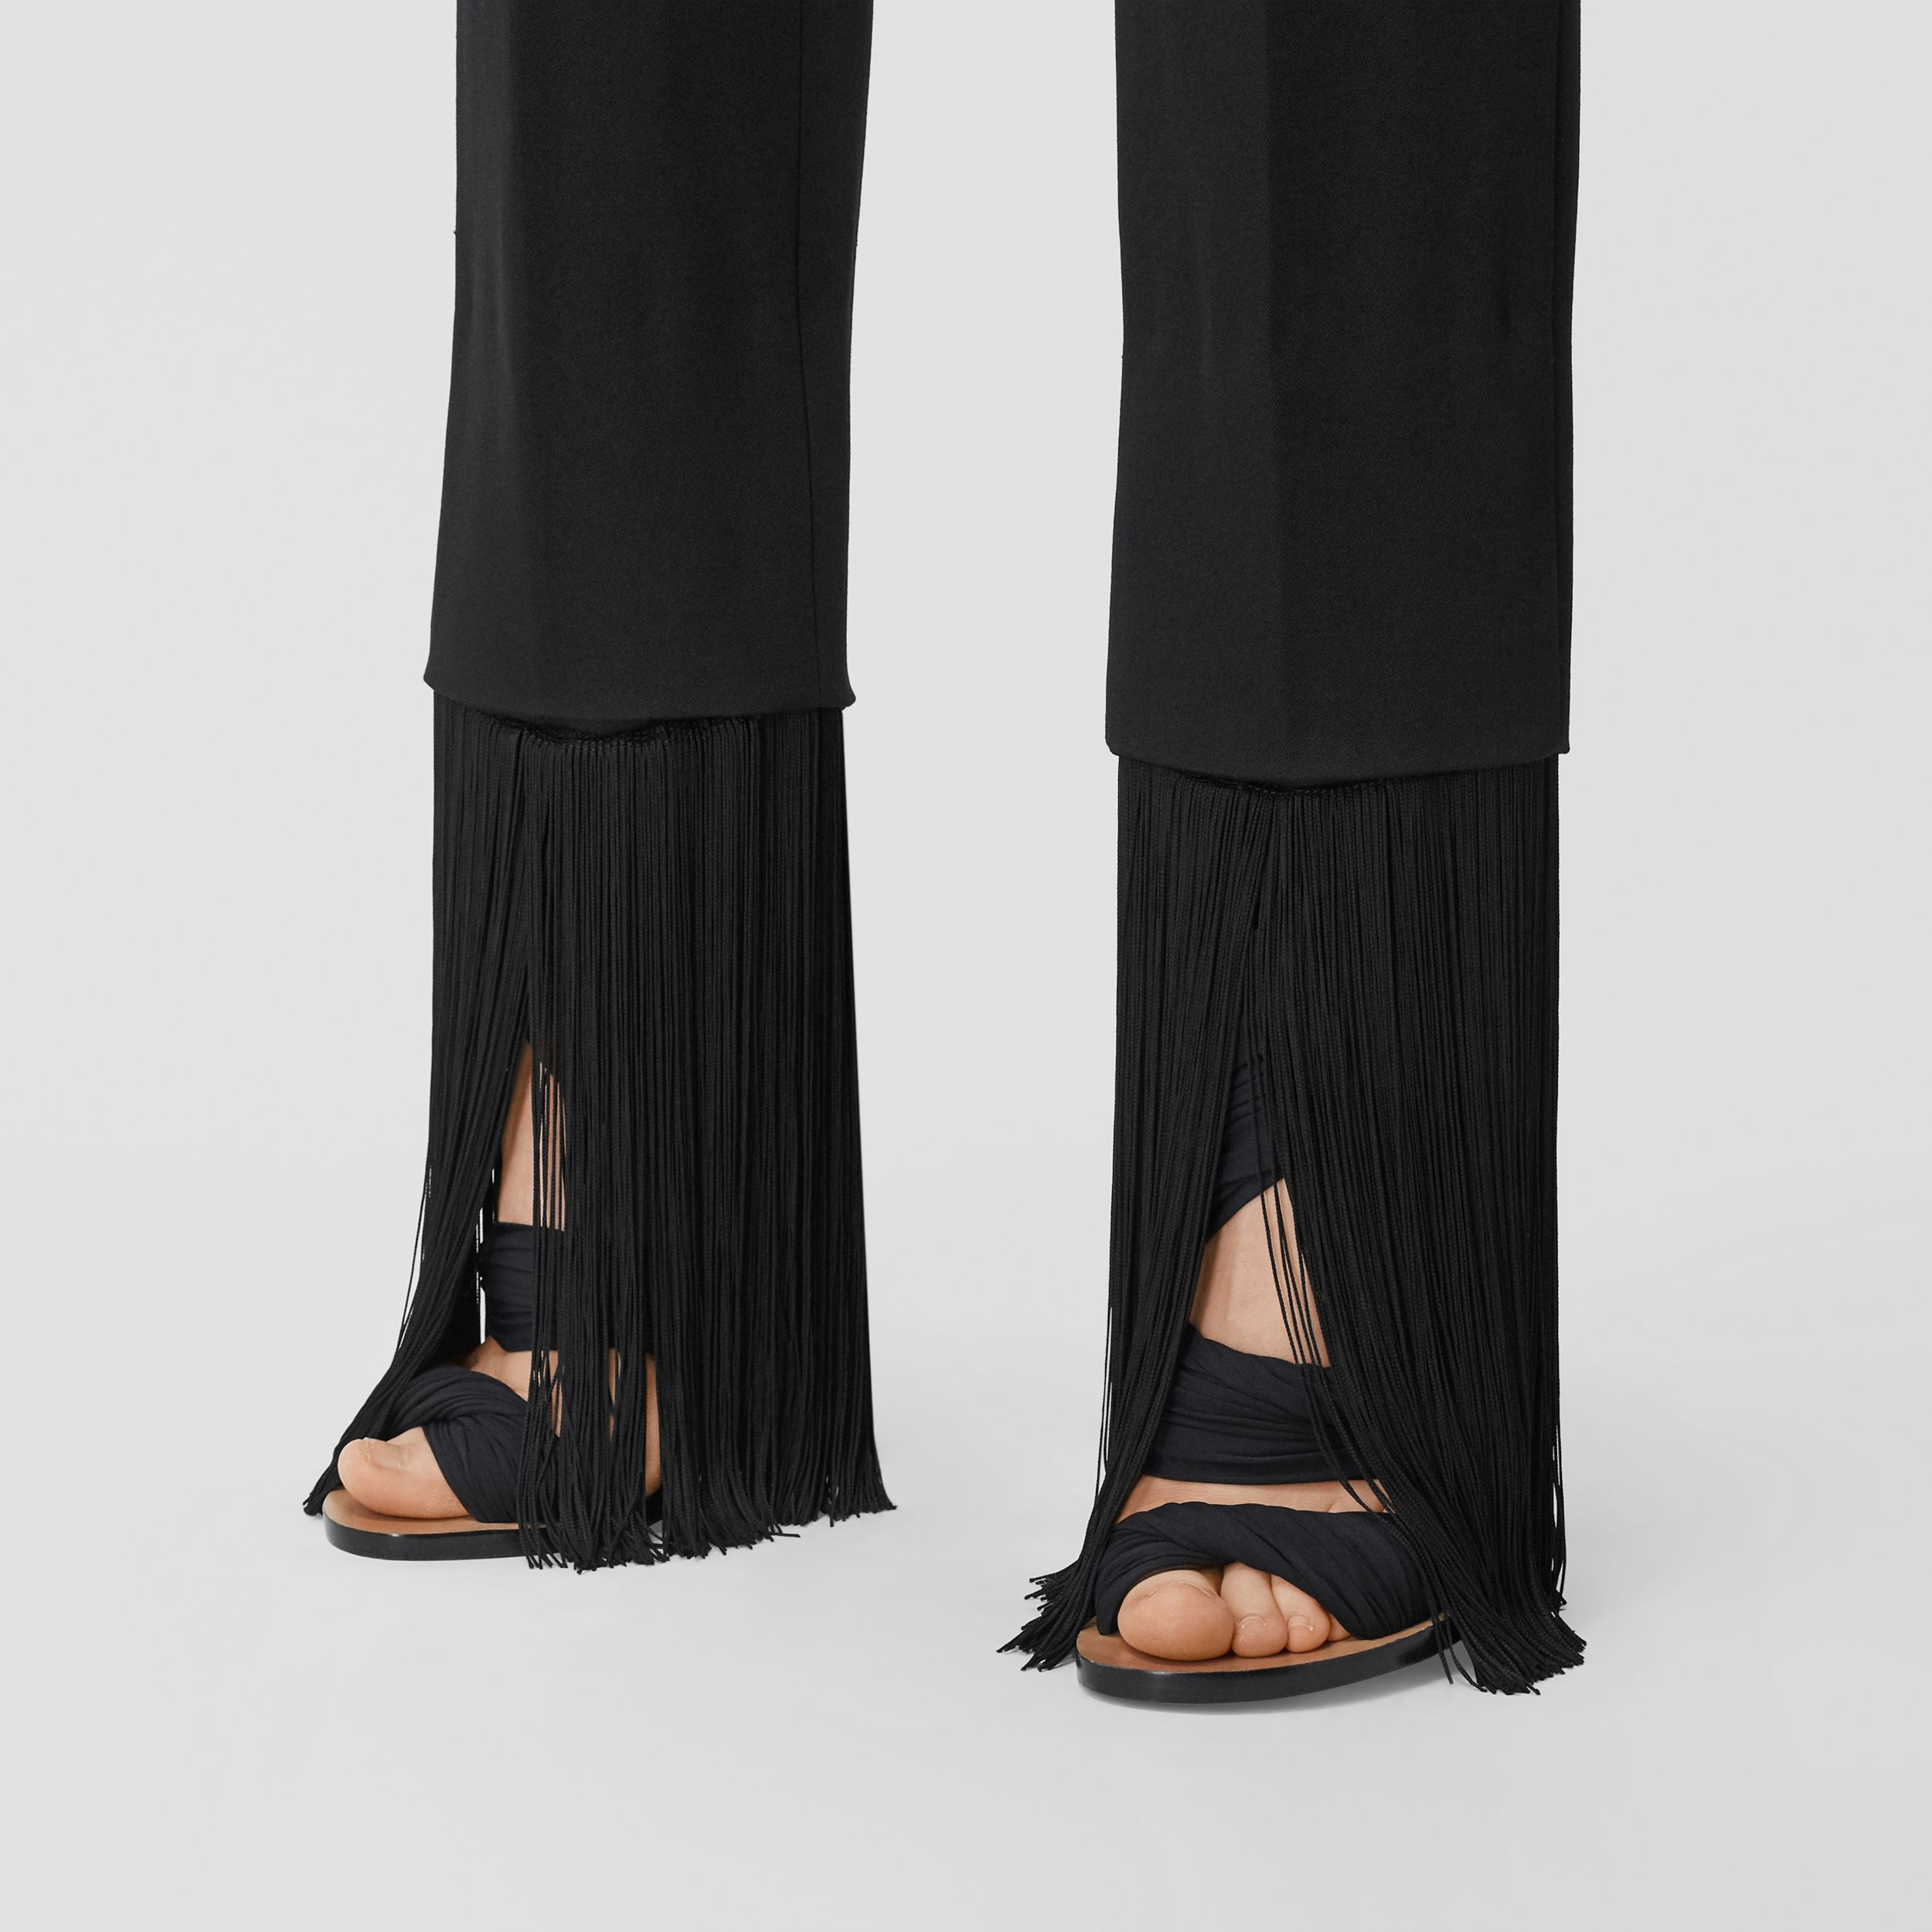 Fringed Grain De Poudre Wool Tailored Trousers in Black - Women | Burberry Hong Kong S.A.R. - 2